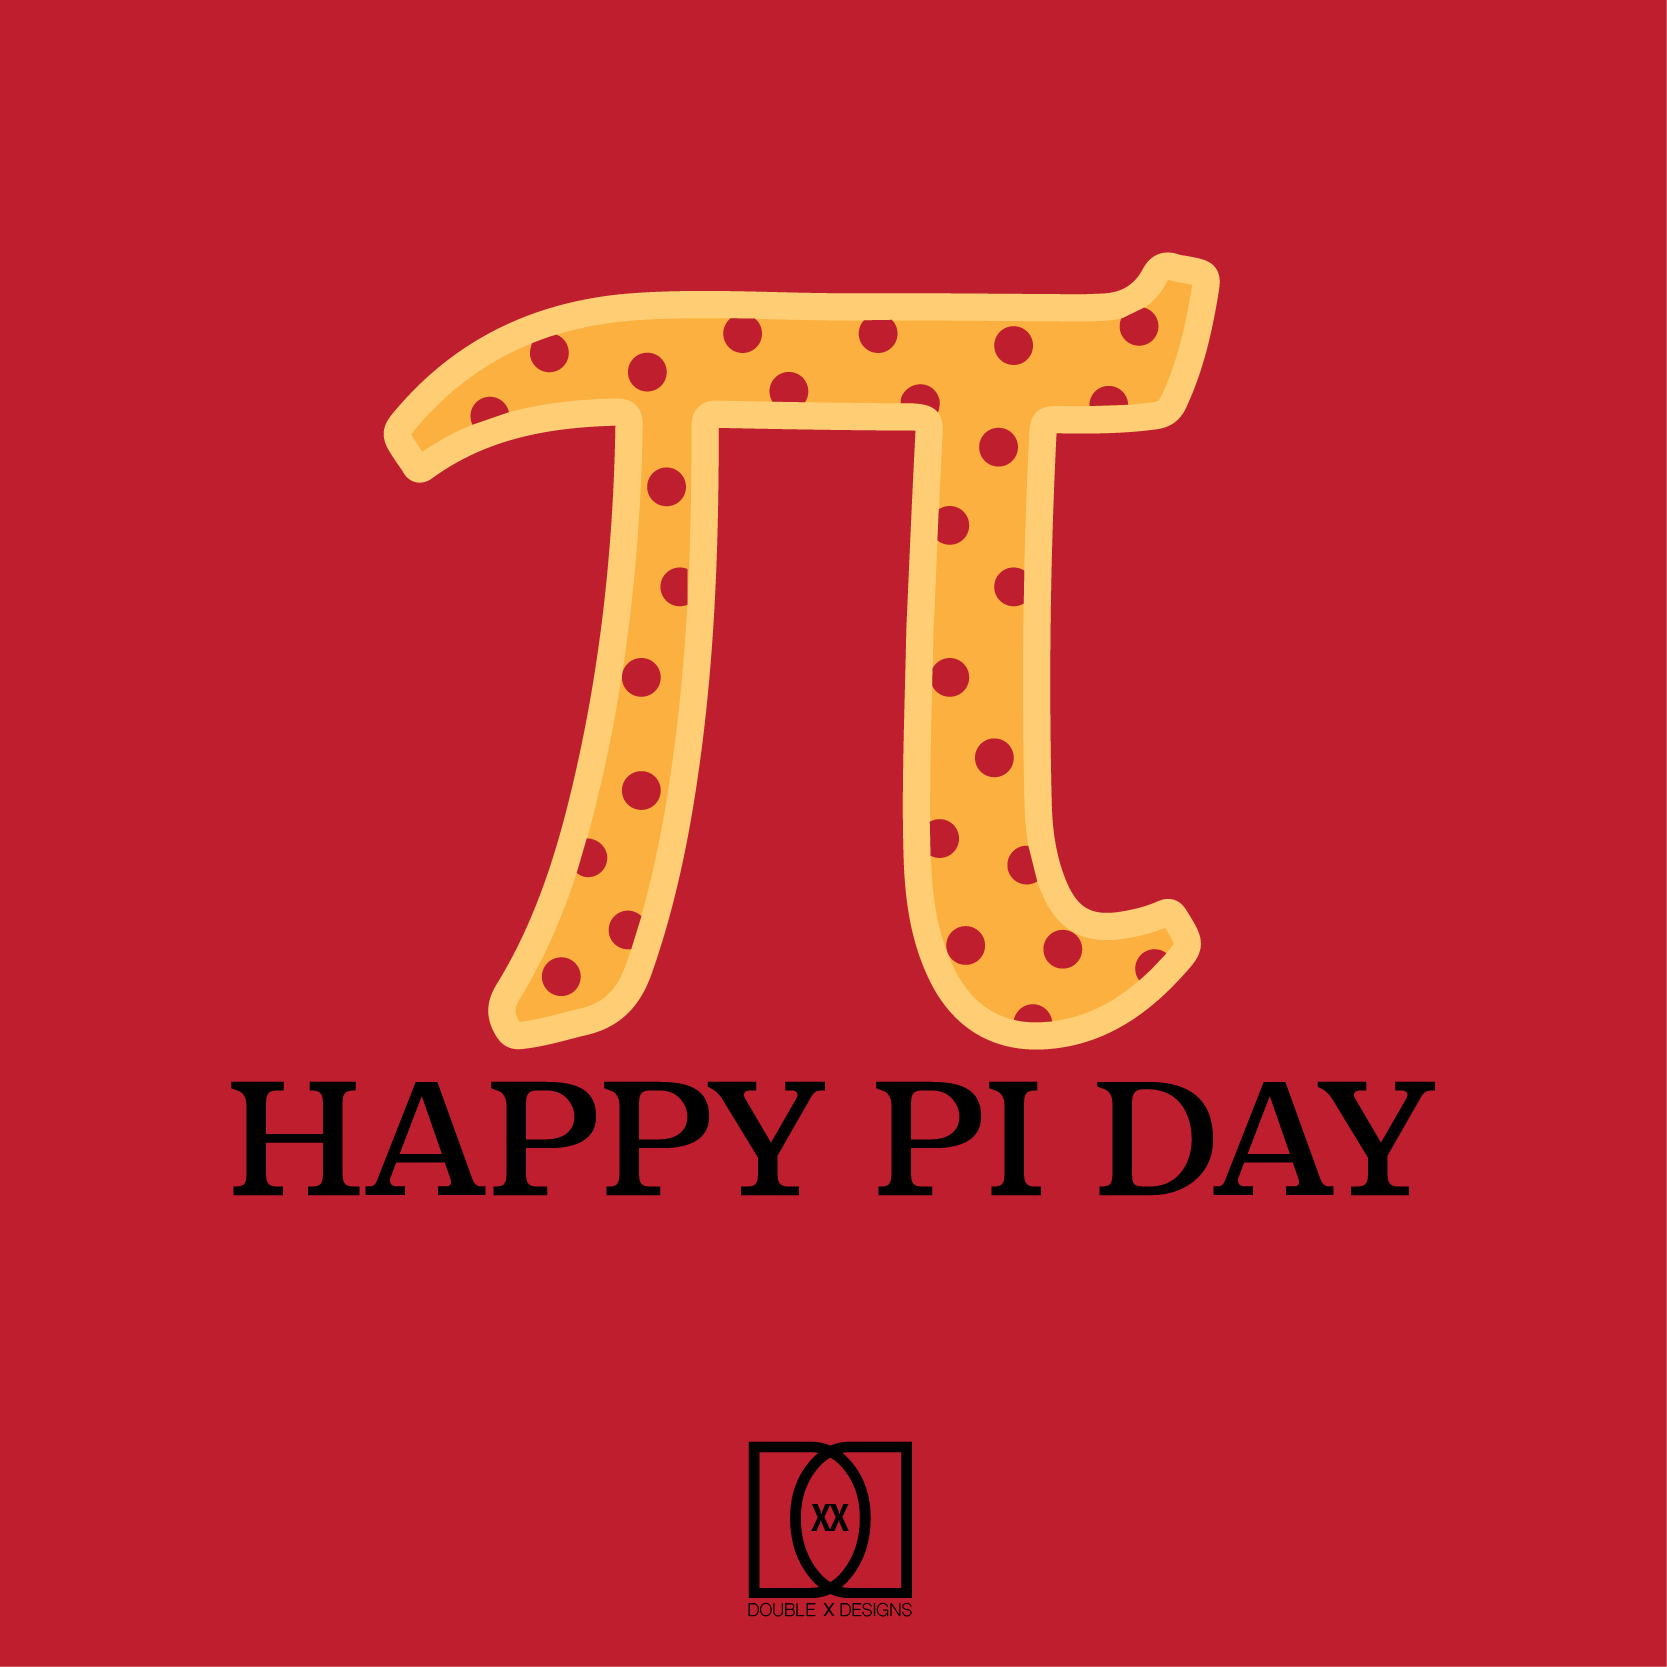 Pi Is An Irrational Number Meaning It S Exact Value Is Completely Unknowable Scientists Have Calculated Billions Of Dig Happy Pi Day Design Number Meanings